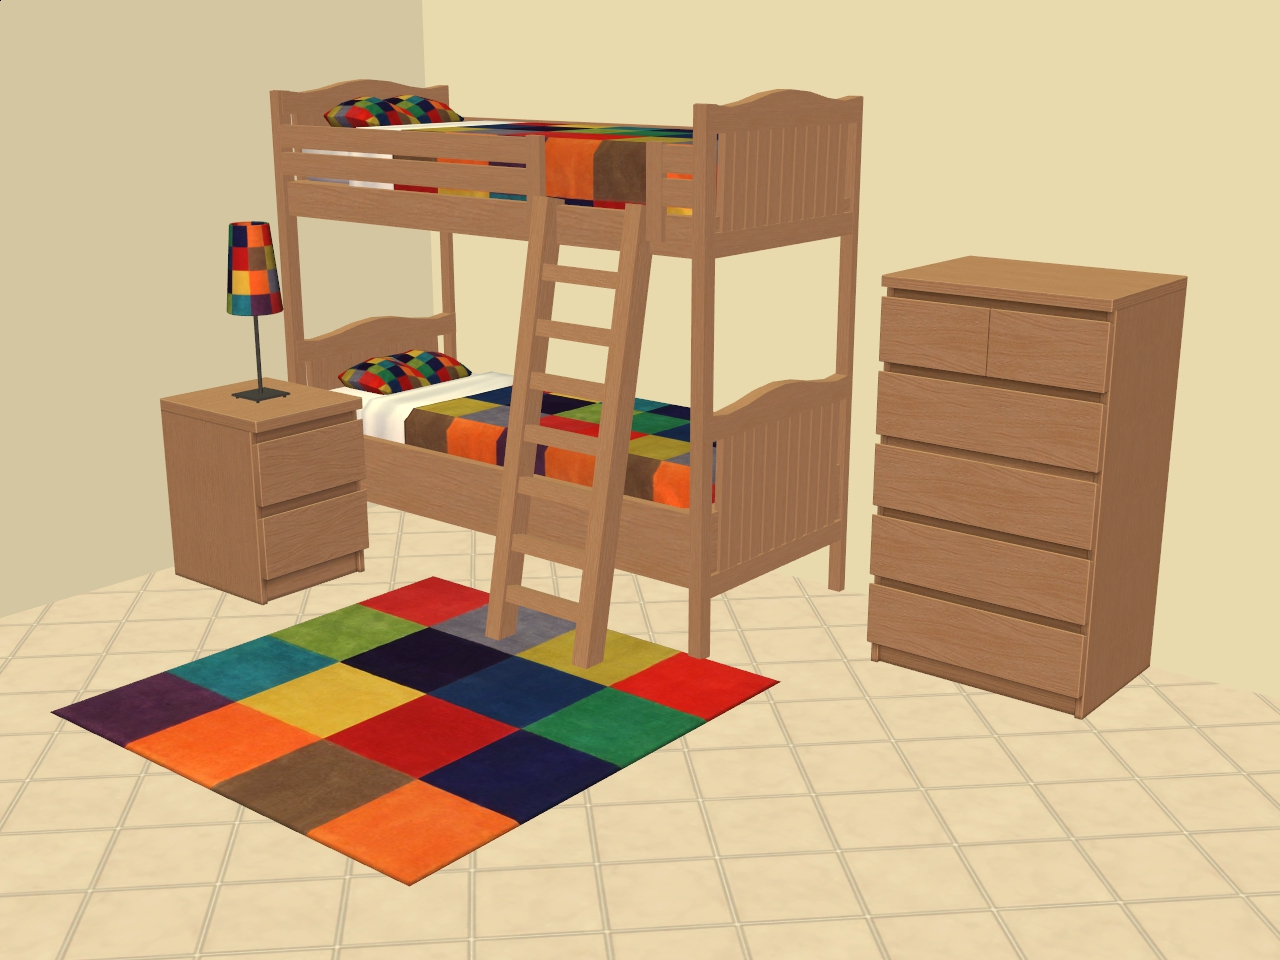 Mod the sims hope baylor 39 s nantucket bunk beds malm for Mods sims 4 muebles